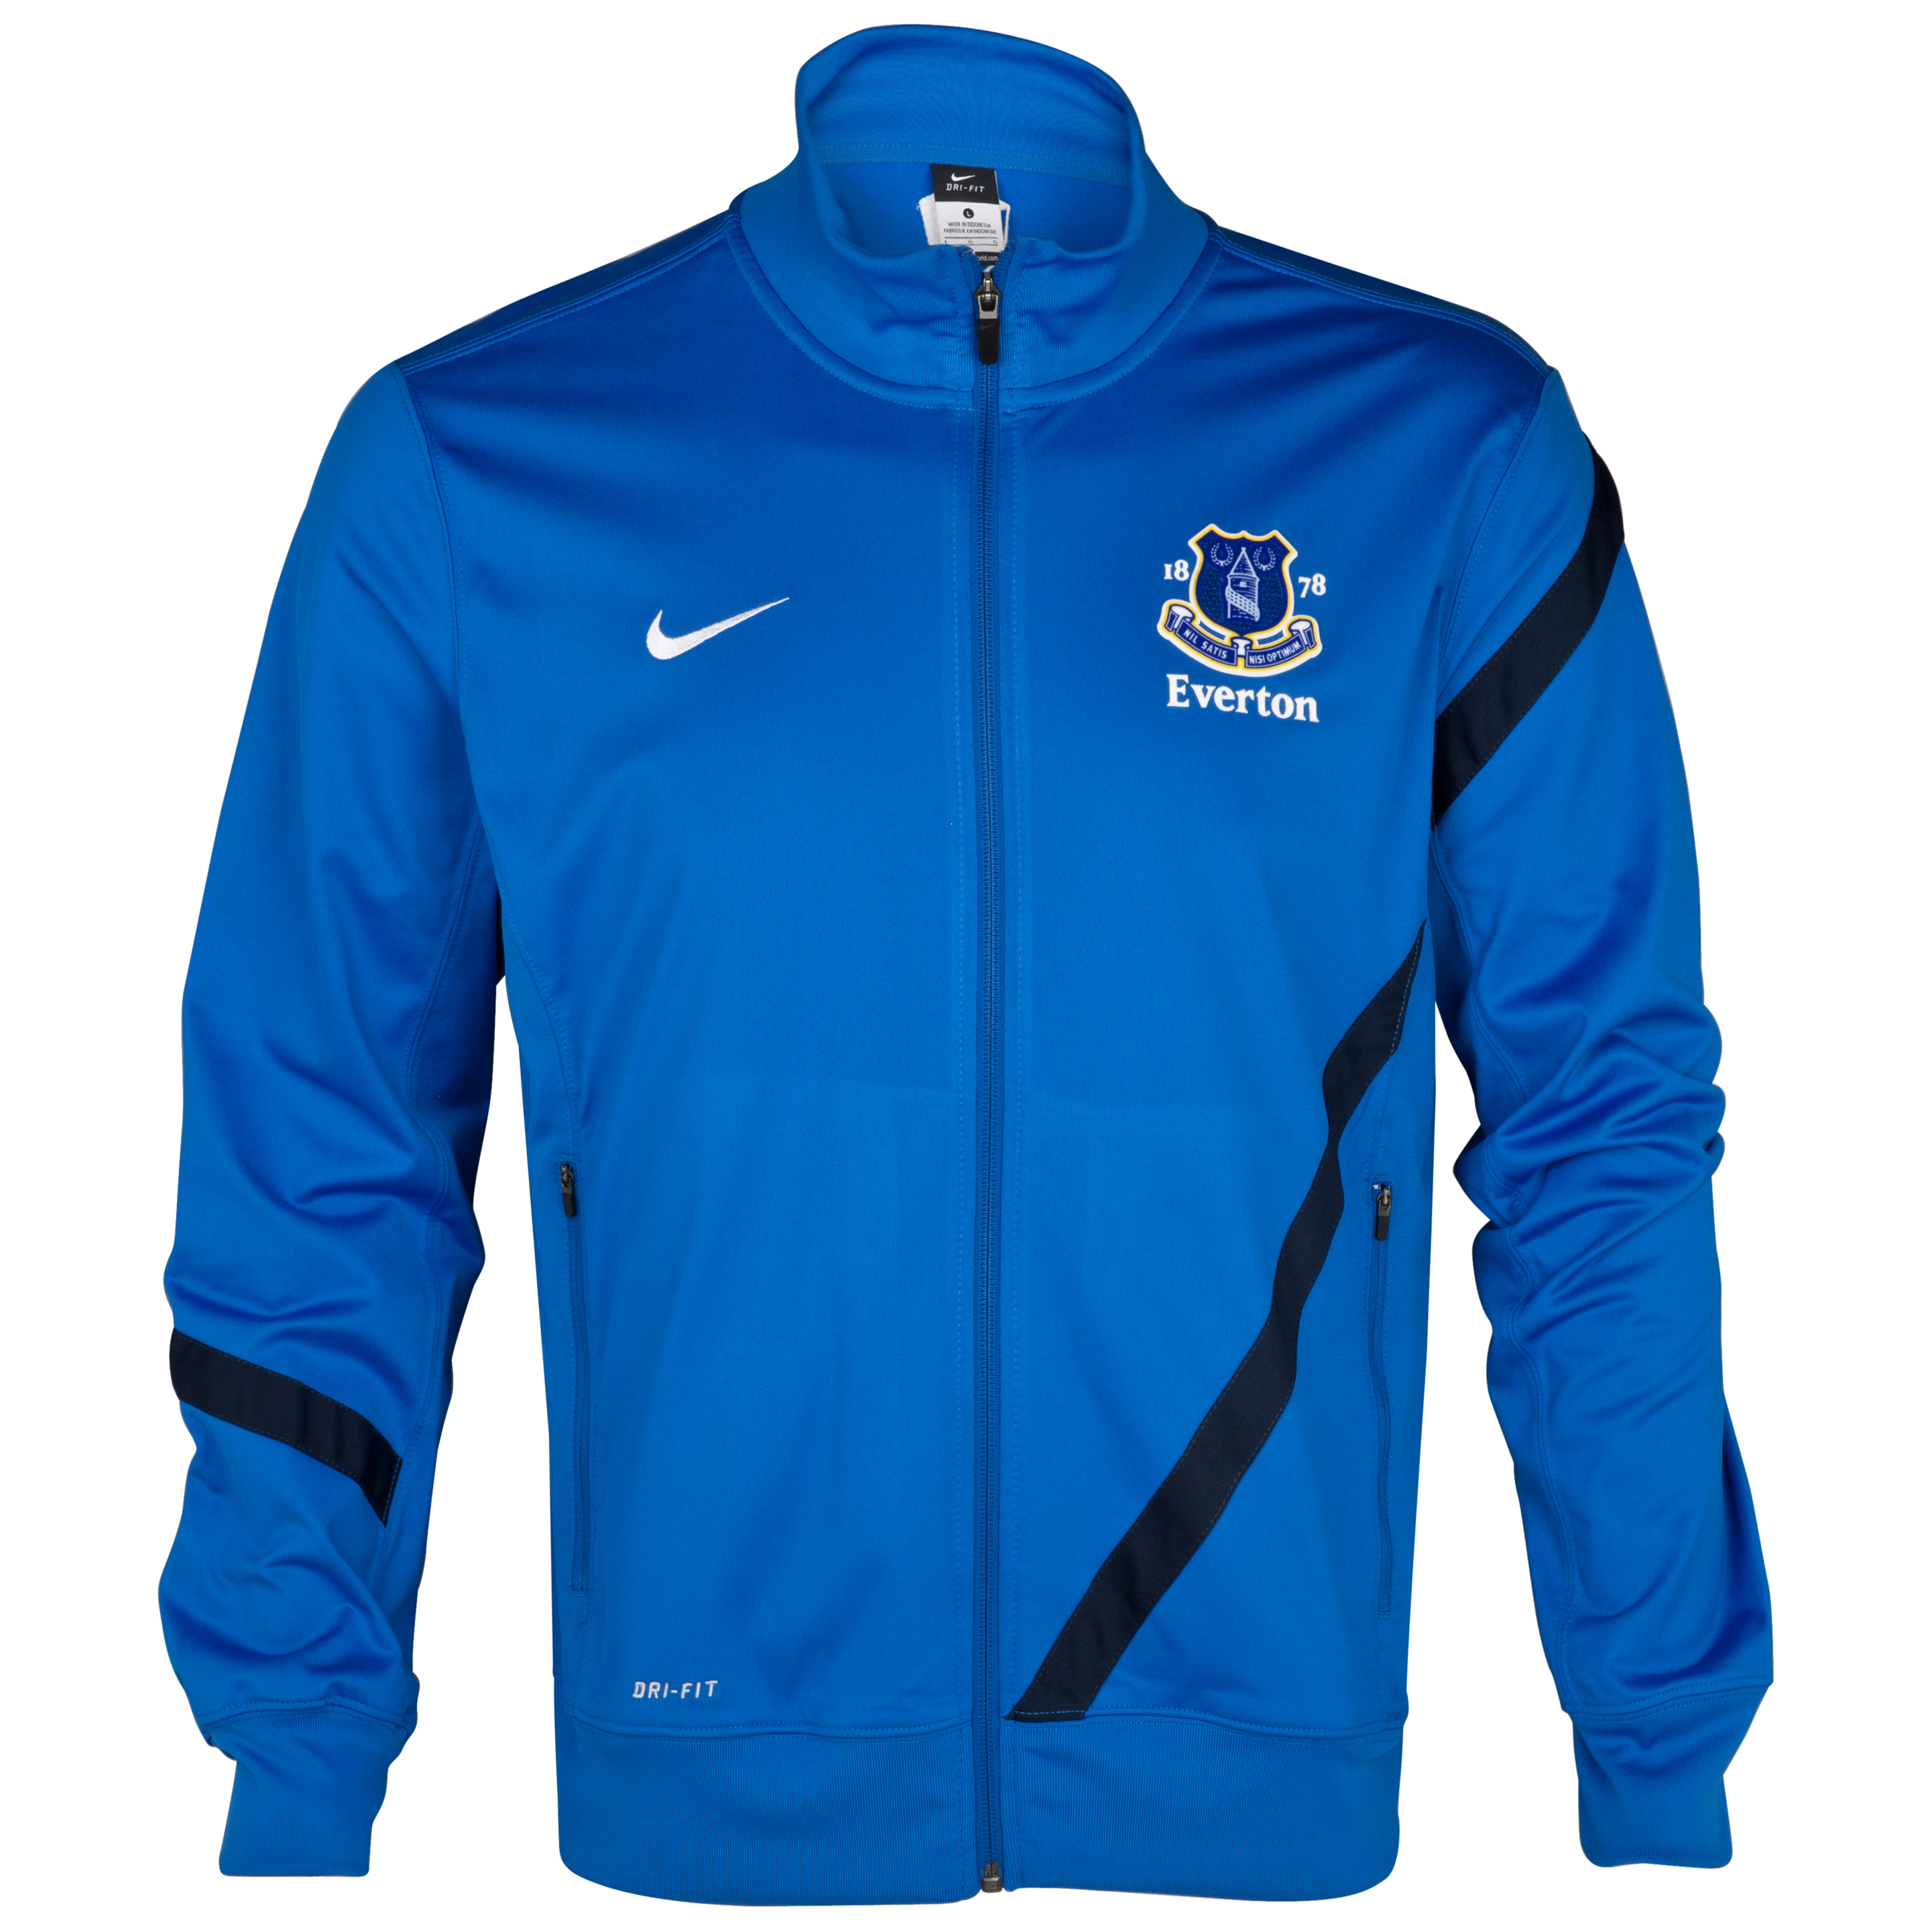 Everton Poly Jacket - Royal Blue/Obsidian/White